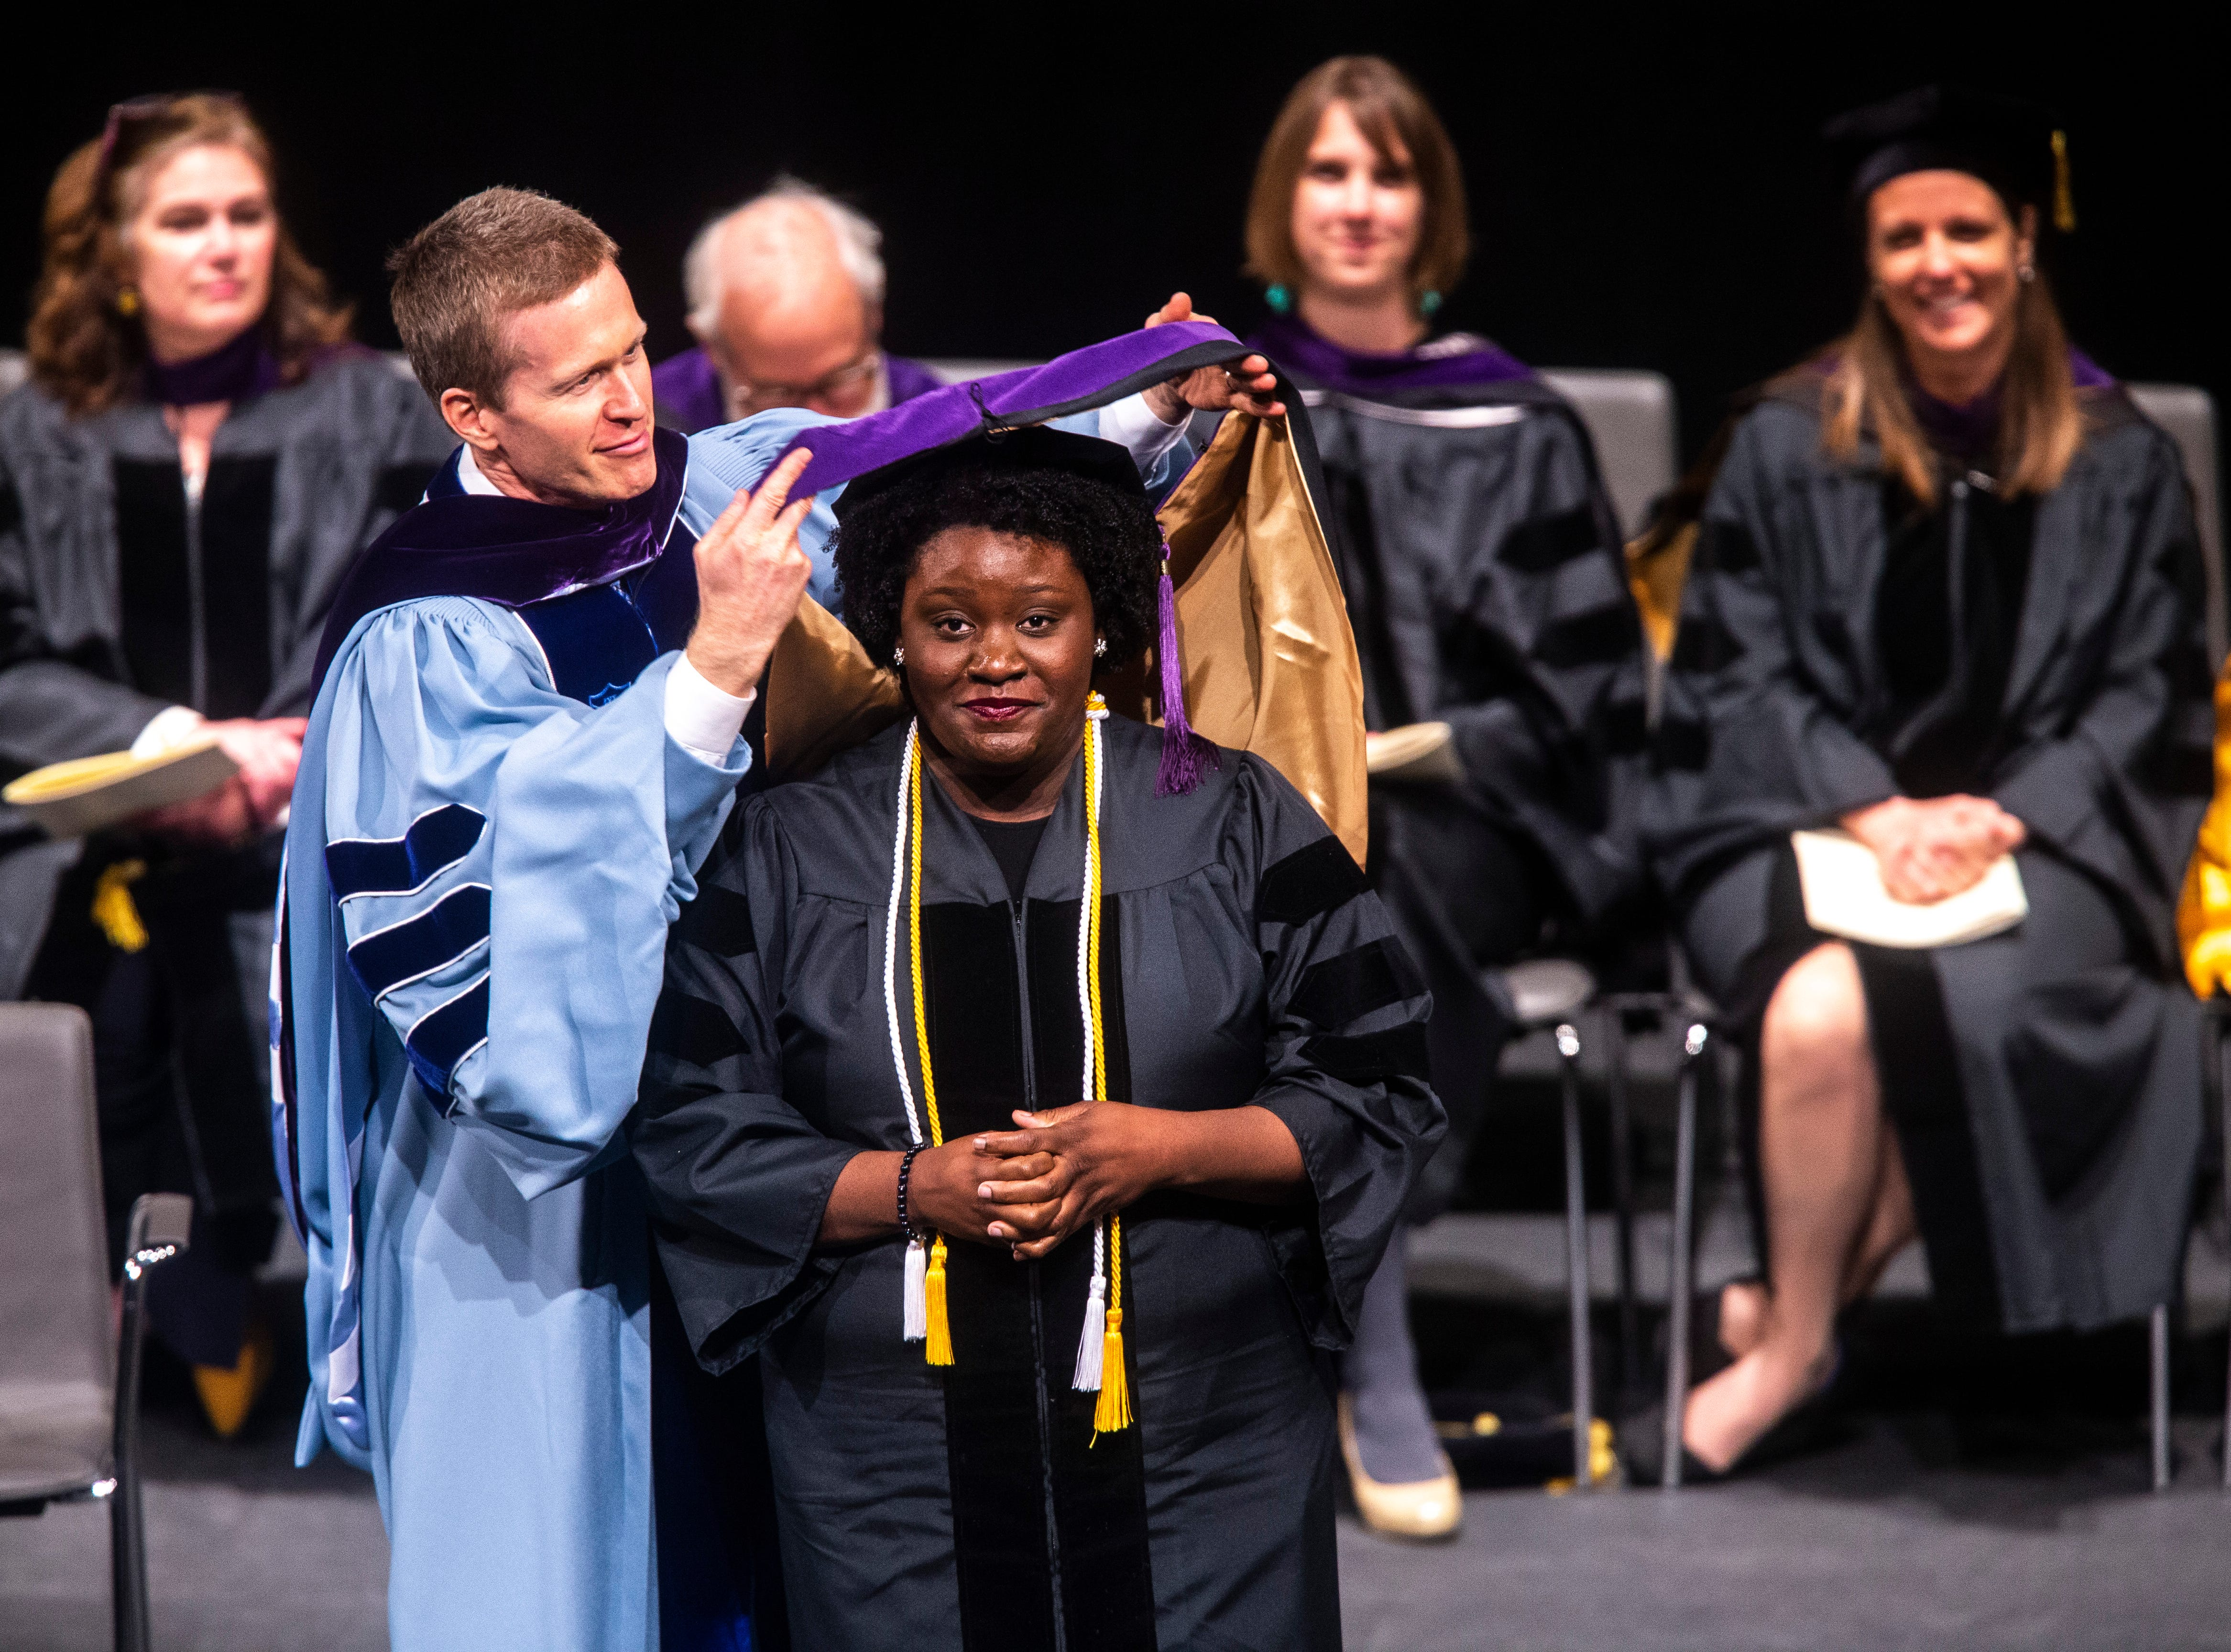 Carrington Eboney-Sade Buze, of Phoenix, Arizona is presented with a hood by Todd E. Pettys, the H. Blair and Joan V. White Chair in Civil Litigation, during the College of Law commencement ceremony, Friday, May 10, 2019, at Hancher Auditorium on the University of Iowa campus in Iowa City, Iowa.